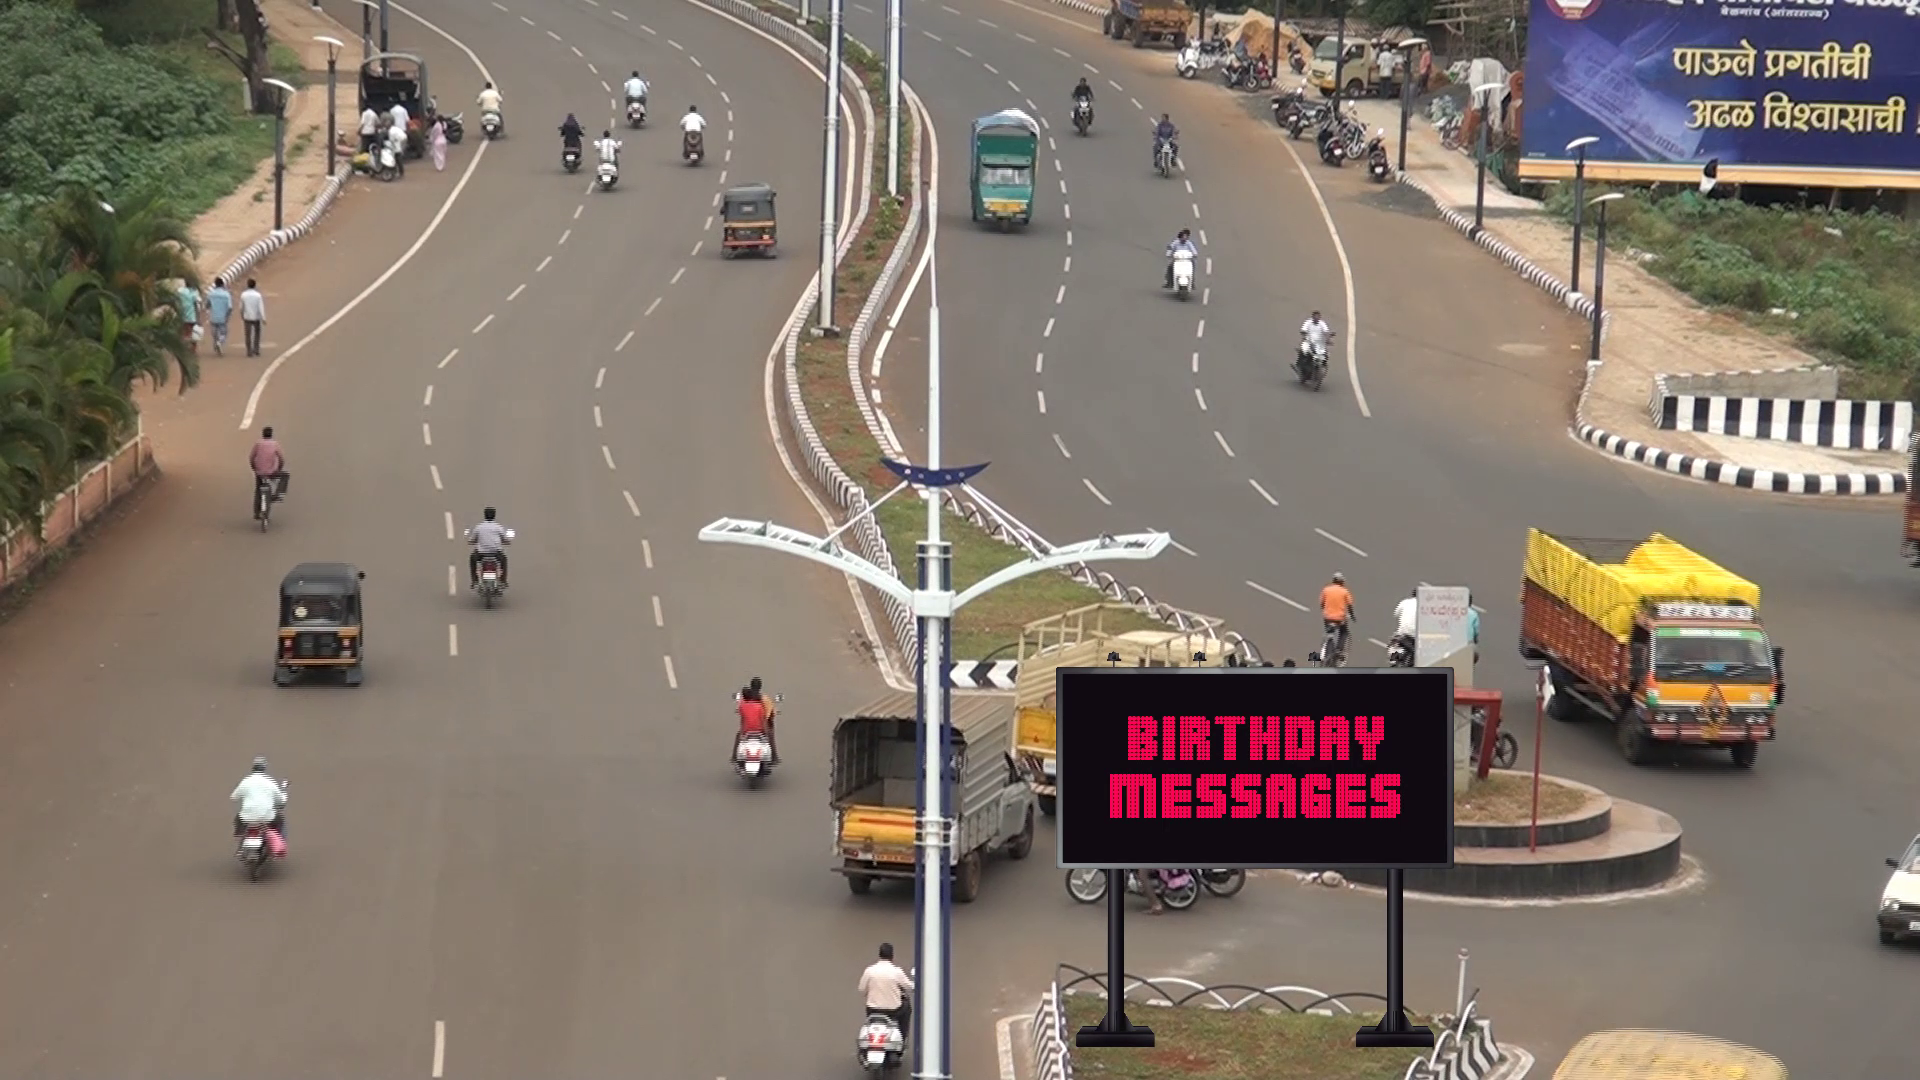 Advertise your message on LED billboard in Belgaum In...